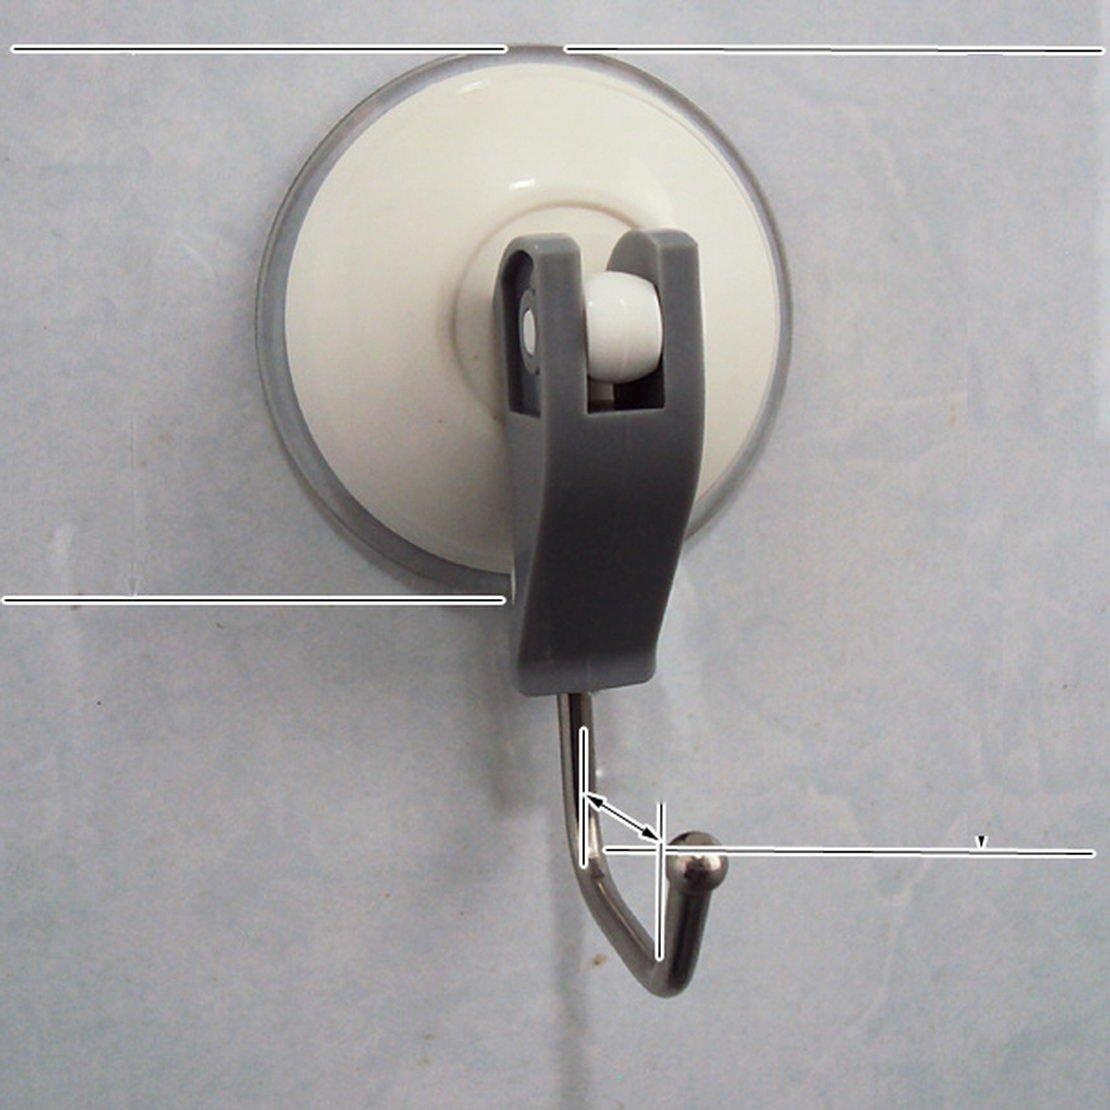 Bathroom Suction Hooks Online Store Suction Hooks Kitchen Bathroom Hook Sucker Hook Hook